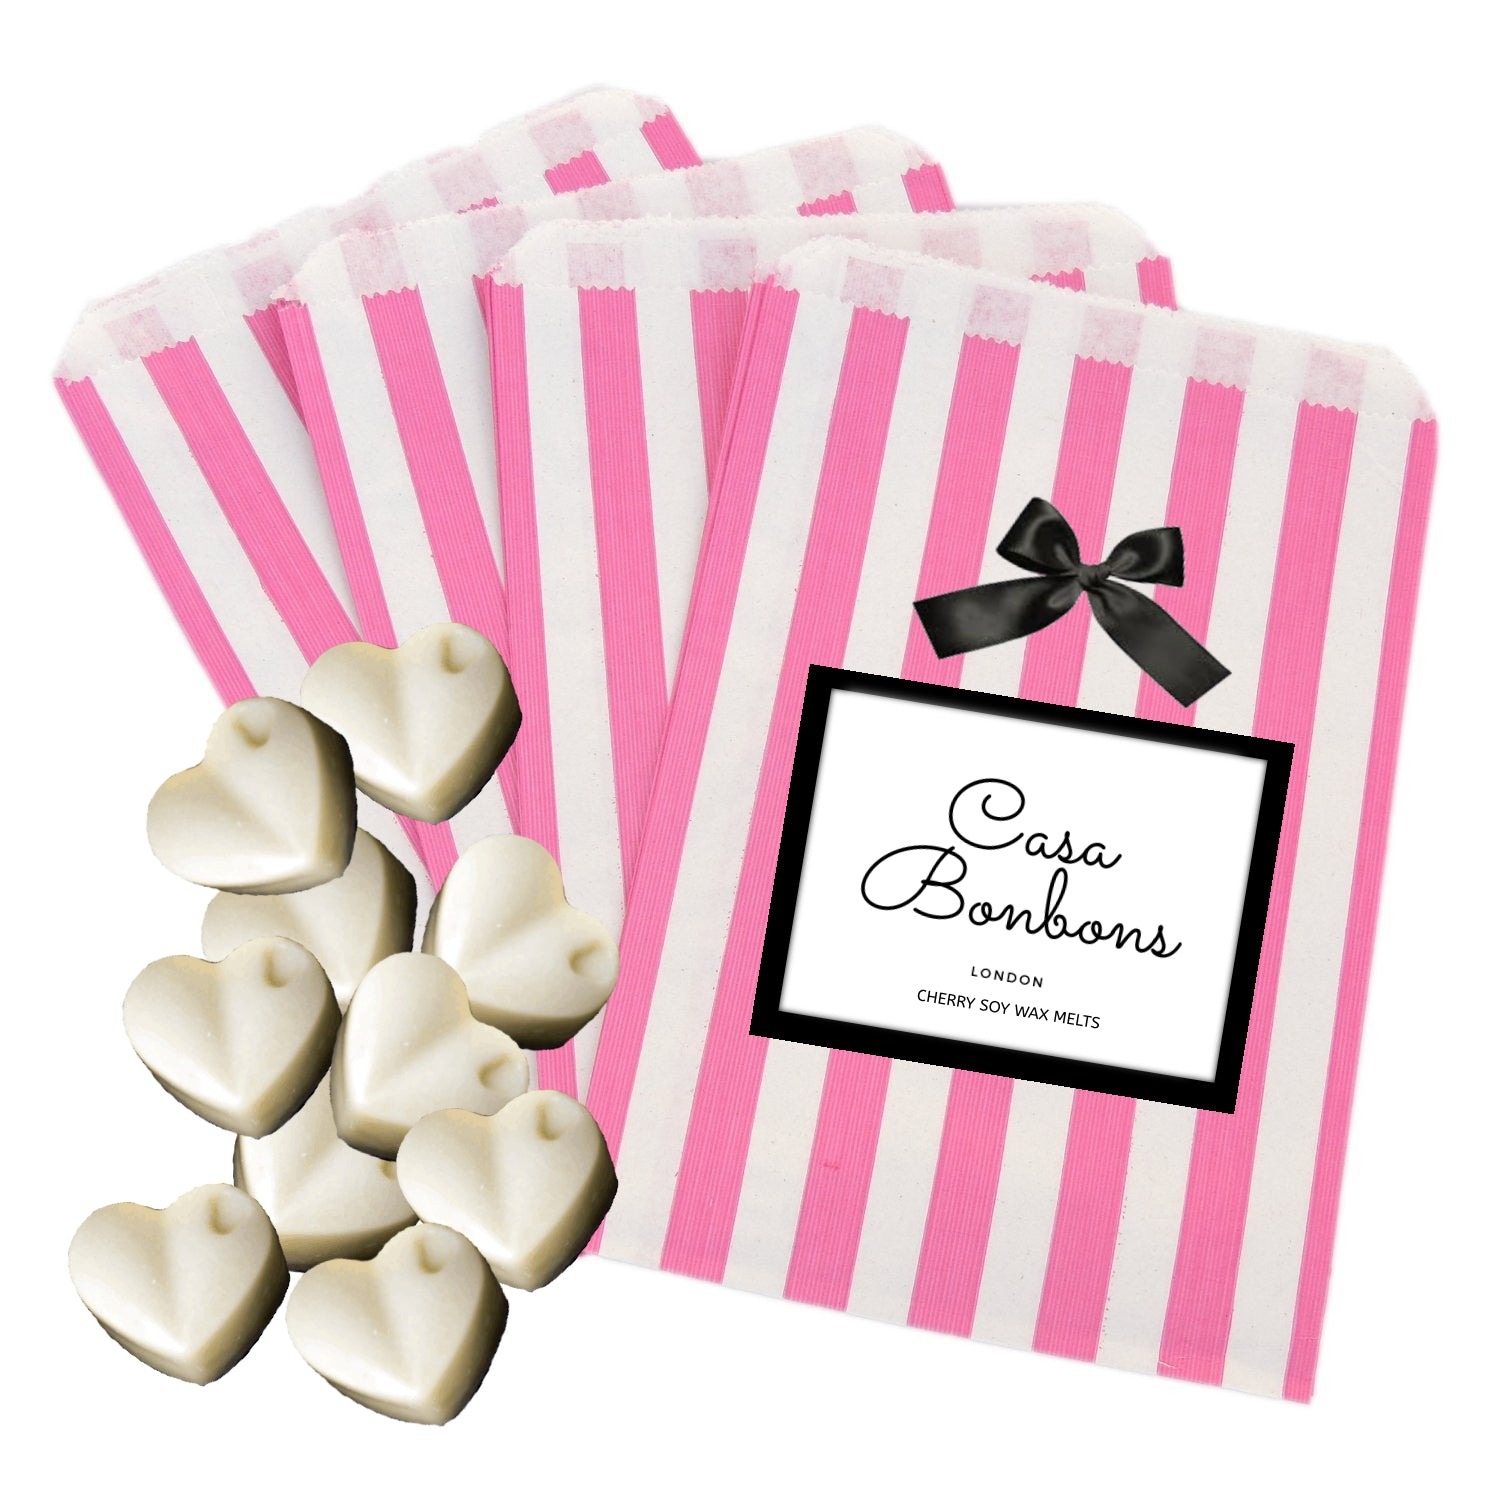 Cherry gentle scented Soy Wax Melts (10 hearts),  PRE-ORDER delivery around 15th of December - natoorio